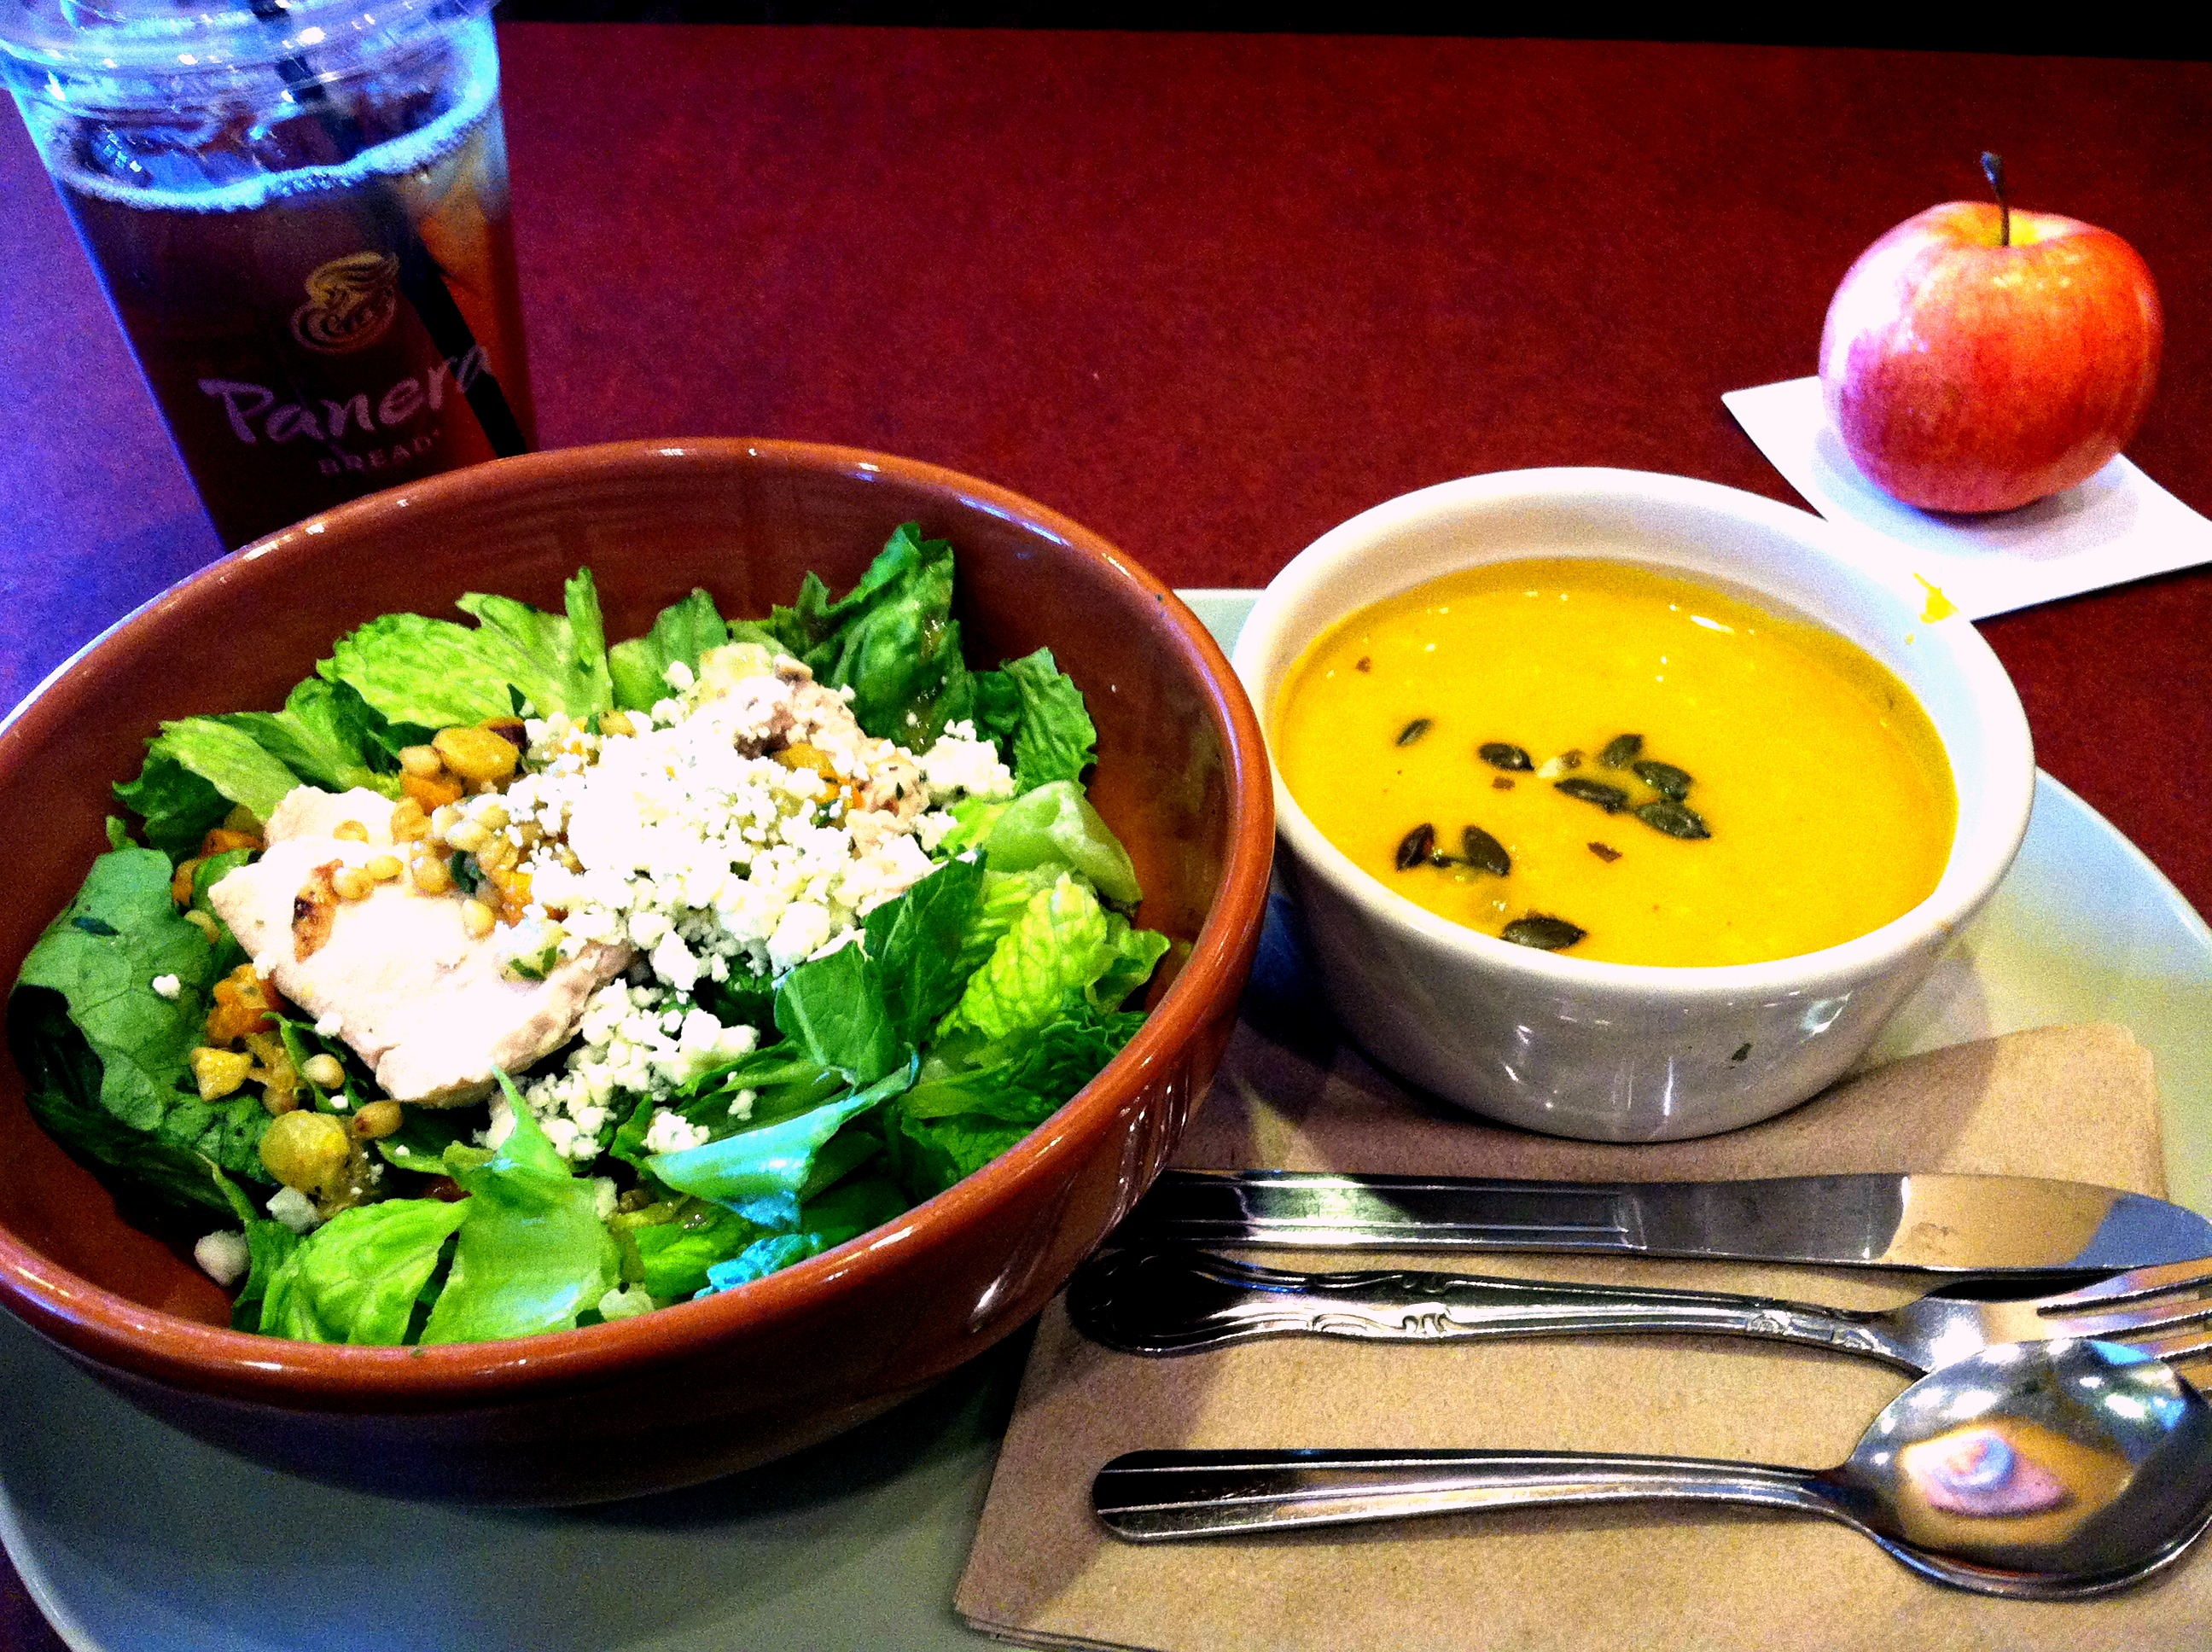 Panera soup and salad